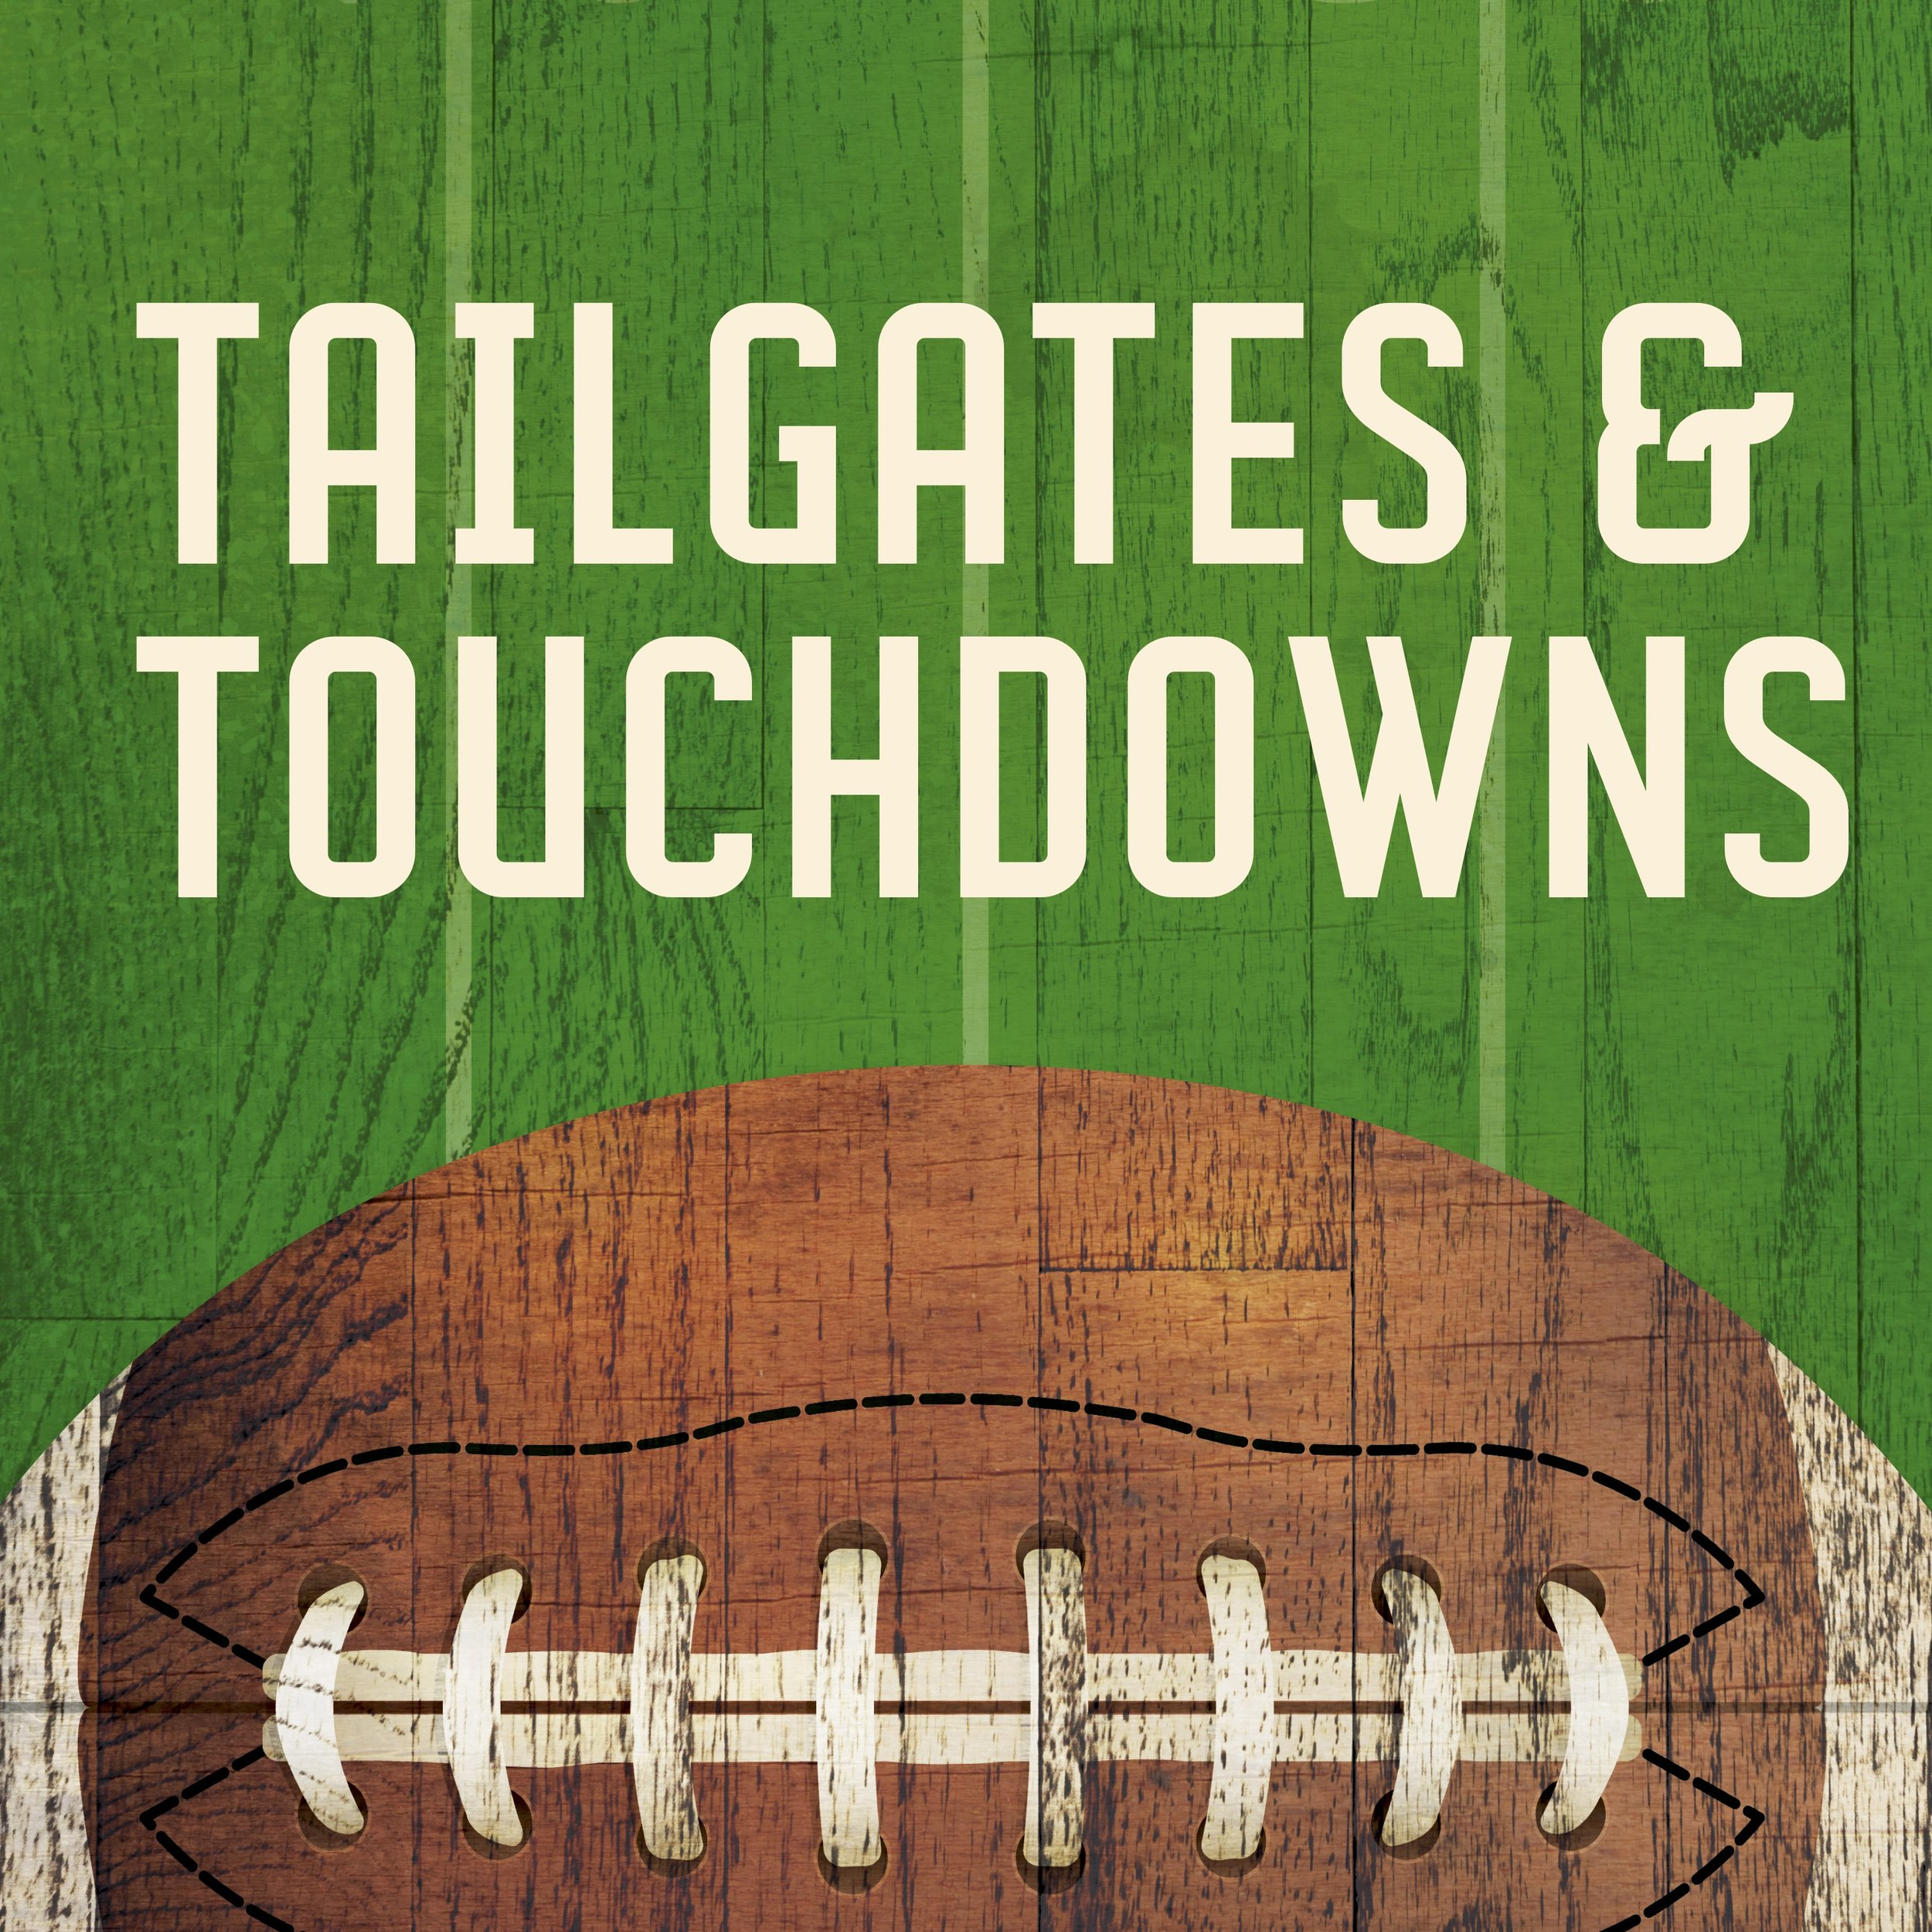 September 7th - #NationalTailgatingDay   Search:  TAILGATE  Are you ready for this? It's #NationalTailgatingDay ! Join us for a tailgating party at ________ (location) from ____ to ____ (time). Disclaimer: We're not sports fans - we go for the food and drinks. 🤷What can we say? Who will you be cheering for?